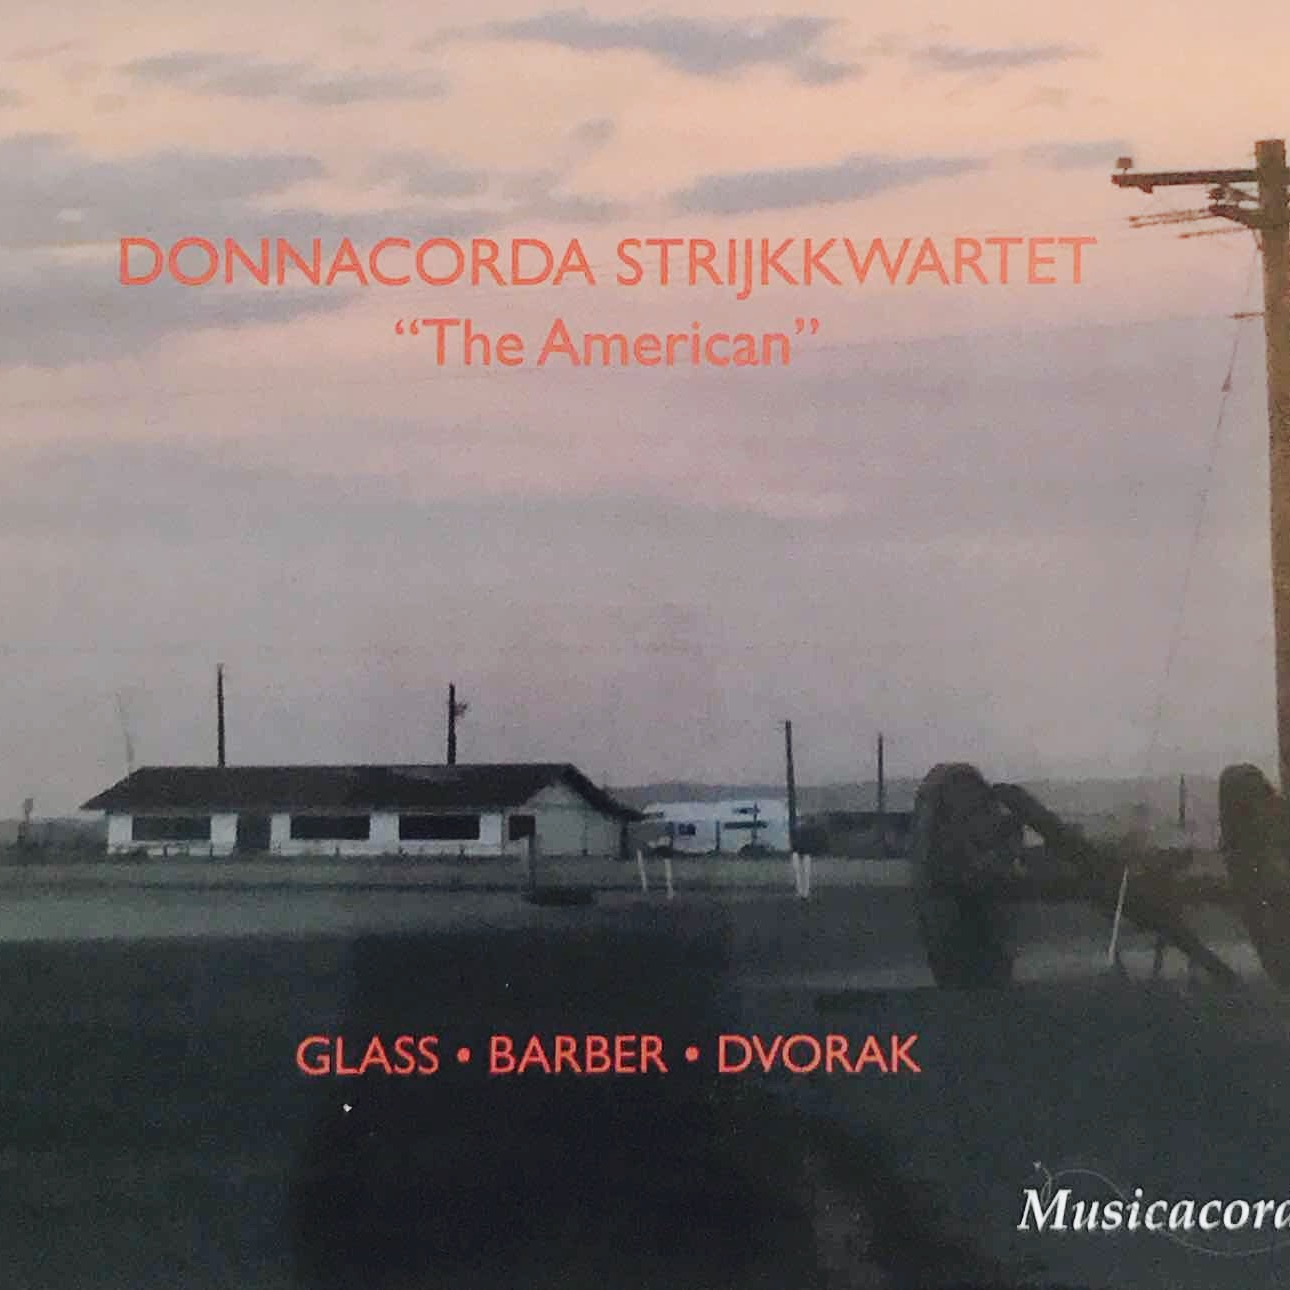 cd-cover-the-american-vierkant